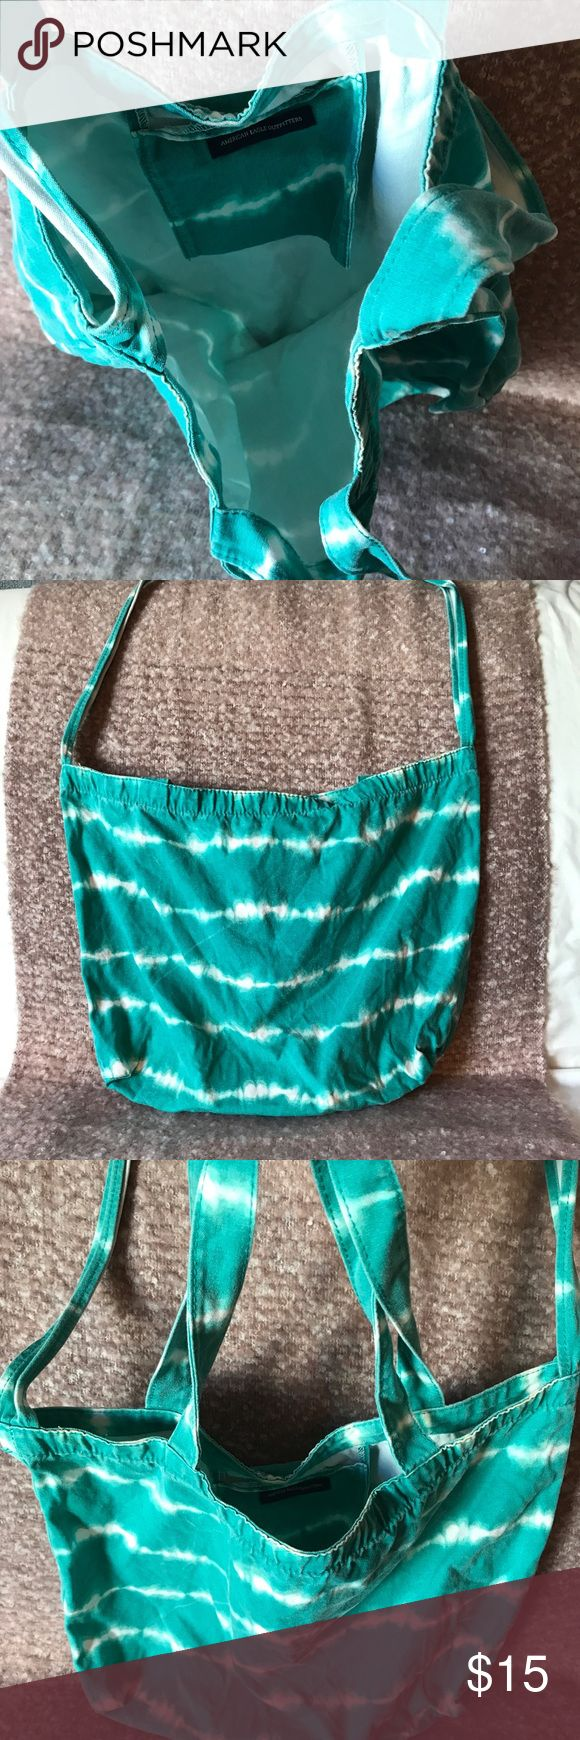 I just added this listing on Poshmark: Tie-dye bag. #shopmycloset #poshmark #fashion #shopping #style #forsale #American Eagle Outfitters #Handbags